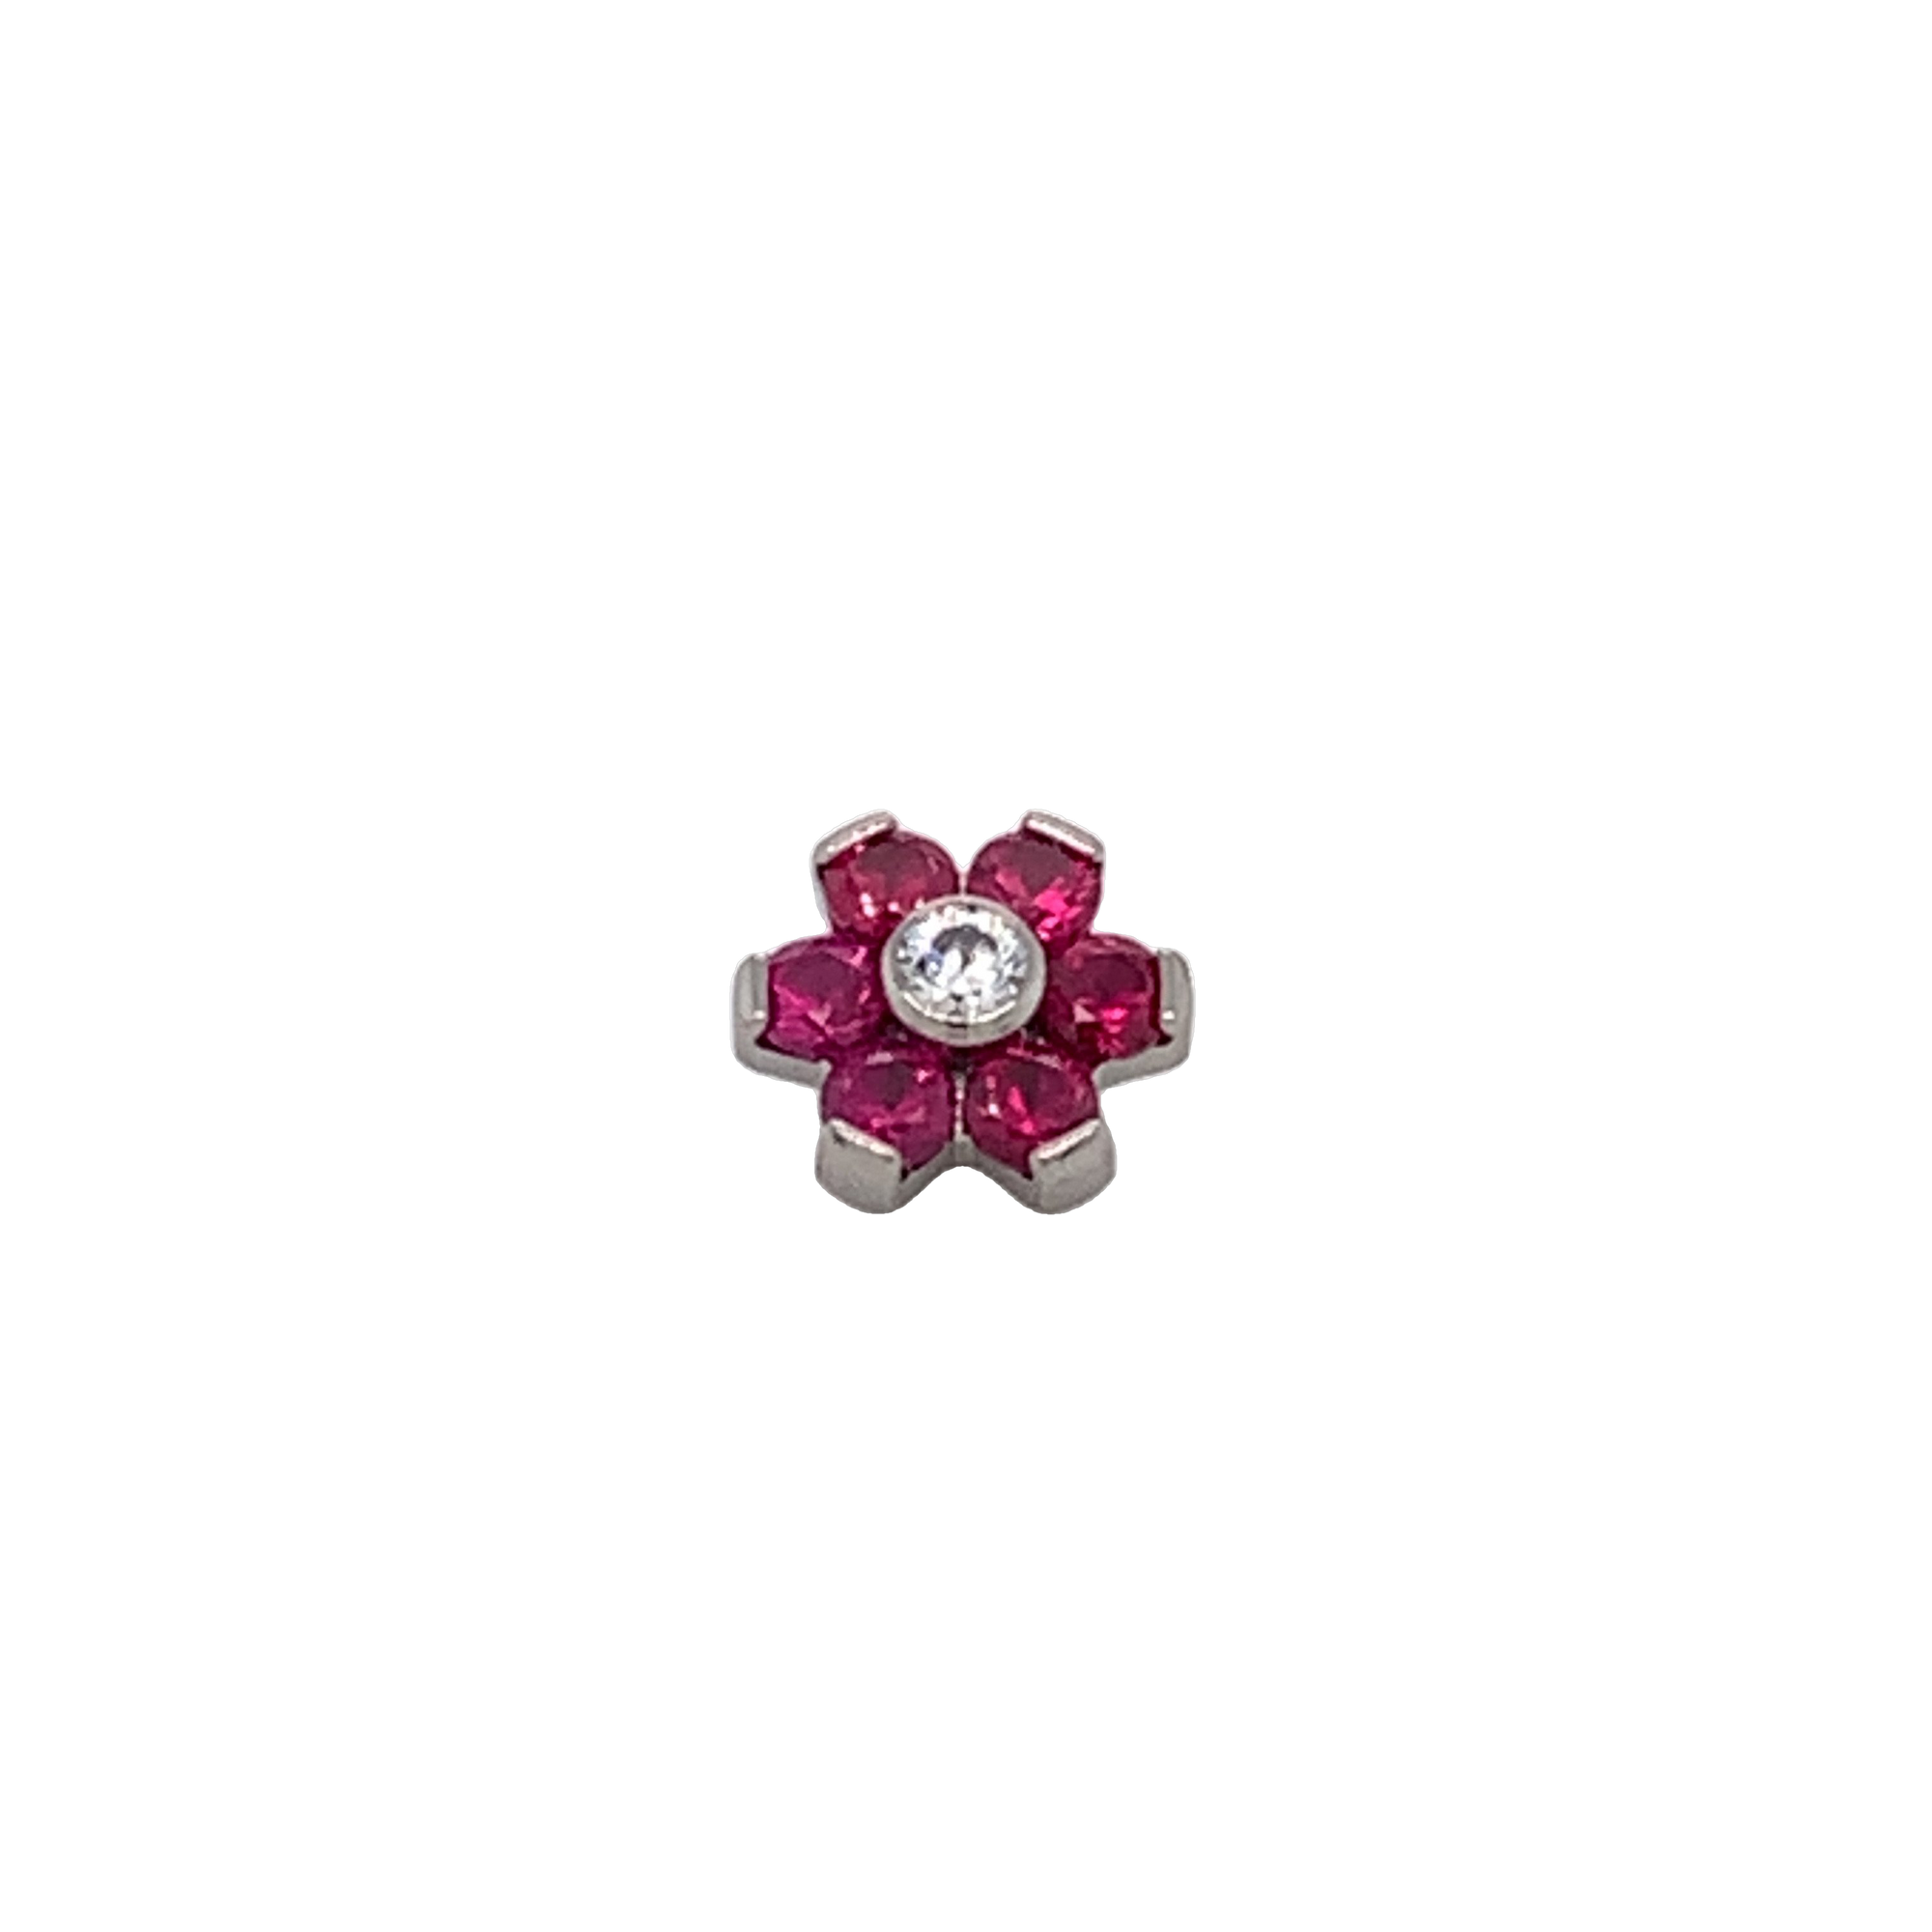 Titanium Ruby & White Cz Flower End With 6 Petals Attachment